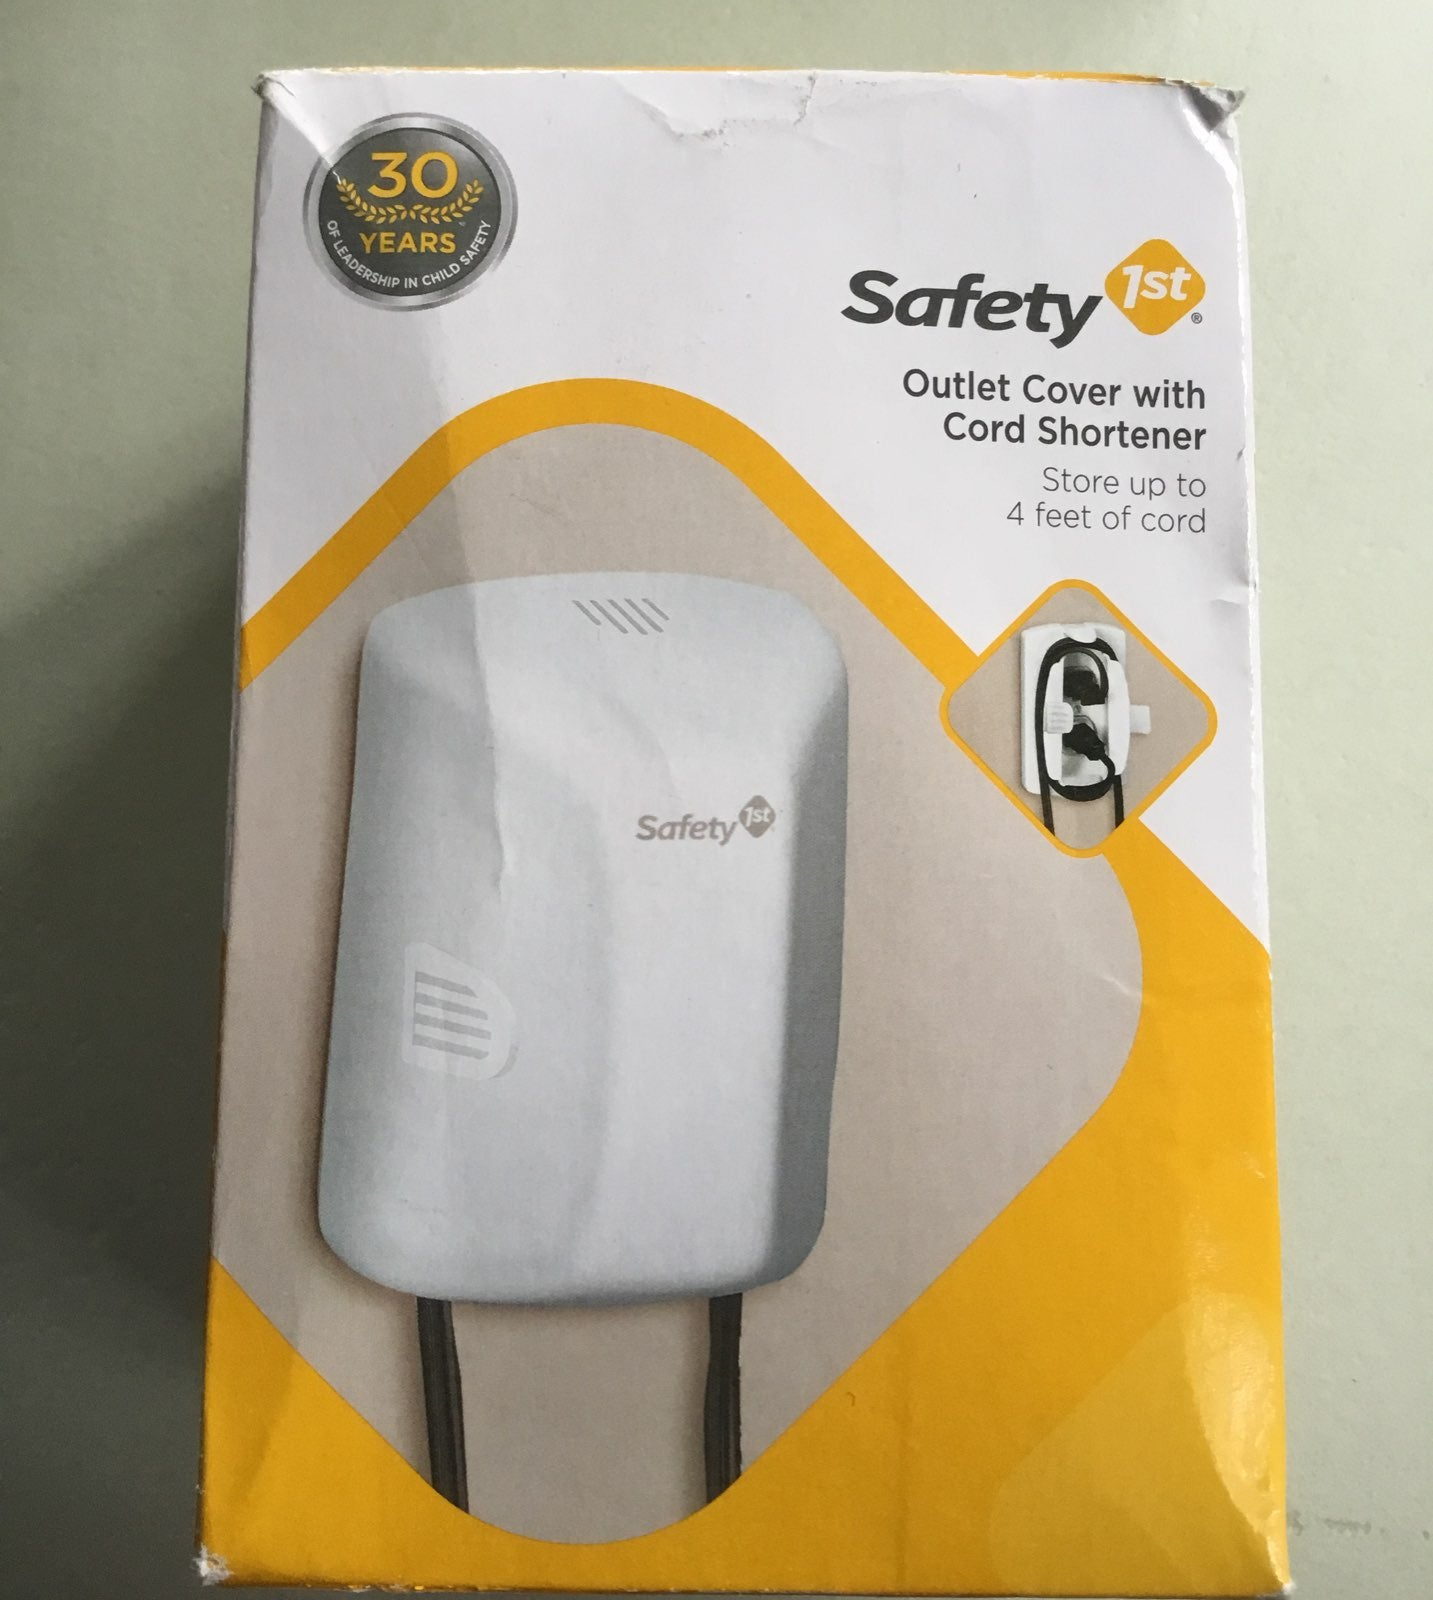 Safety 1 St Outlet Cover Cord Shortener